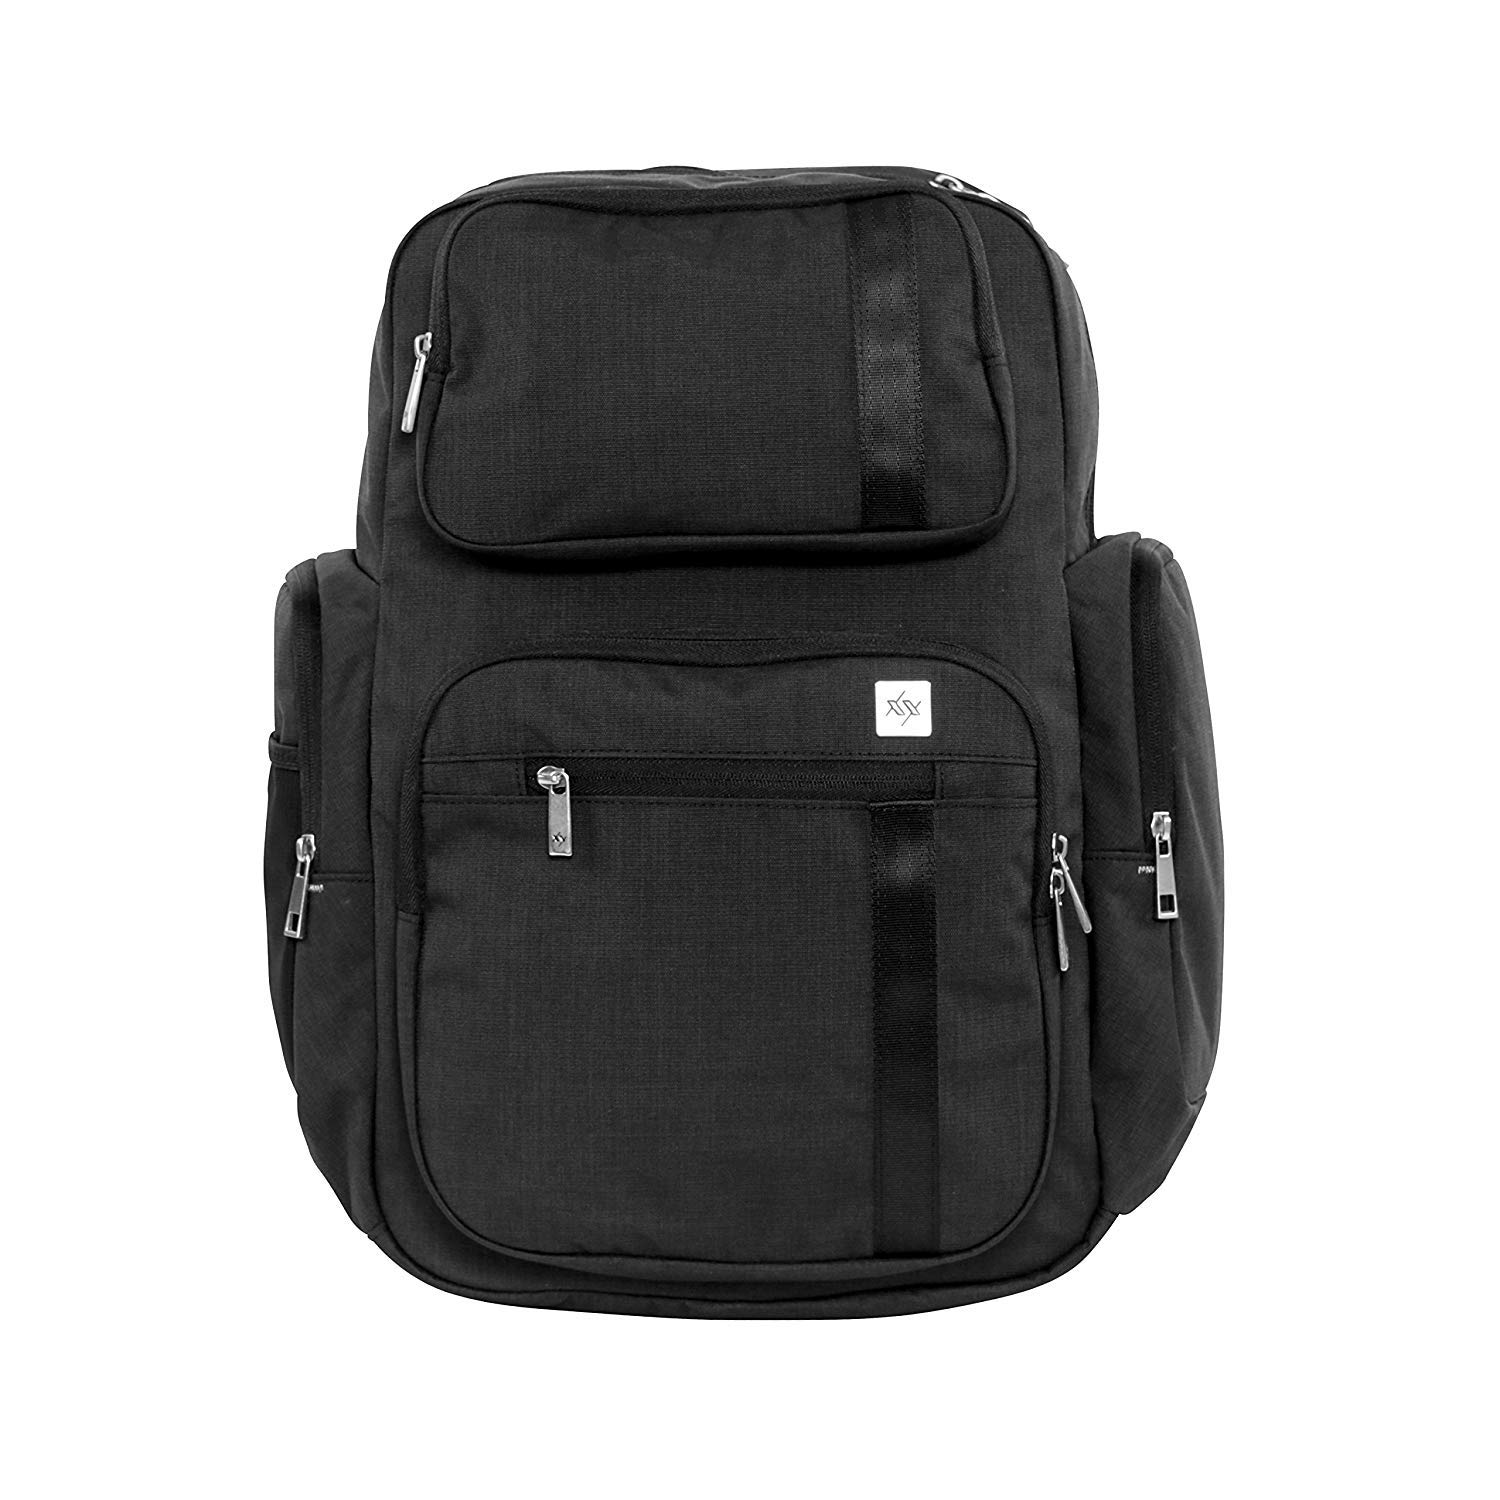 JuJuBe Vector Active Backpack/Diaper Dad Bag, XY Collection - Carbon